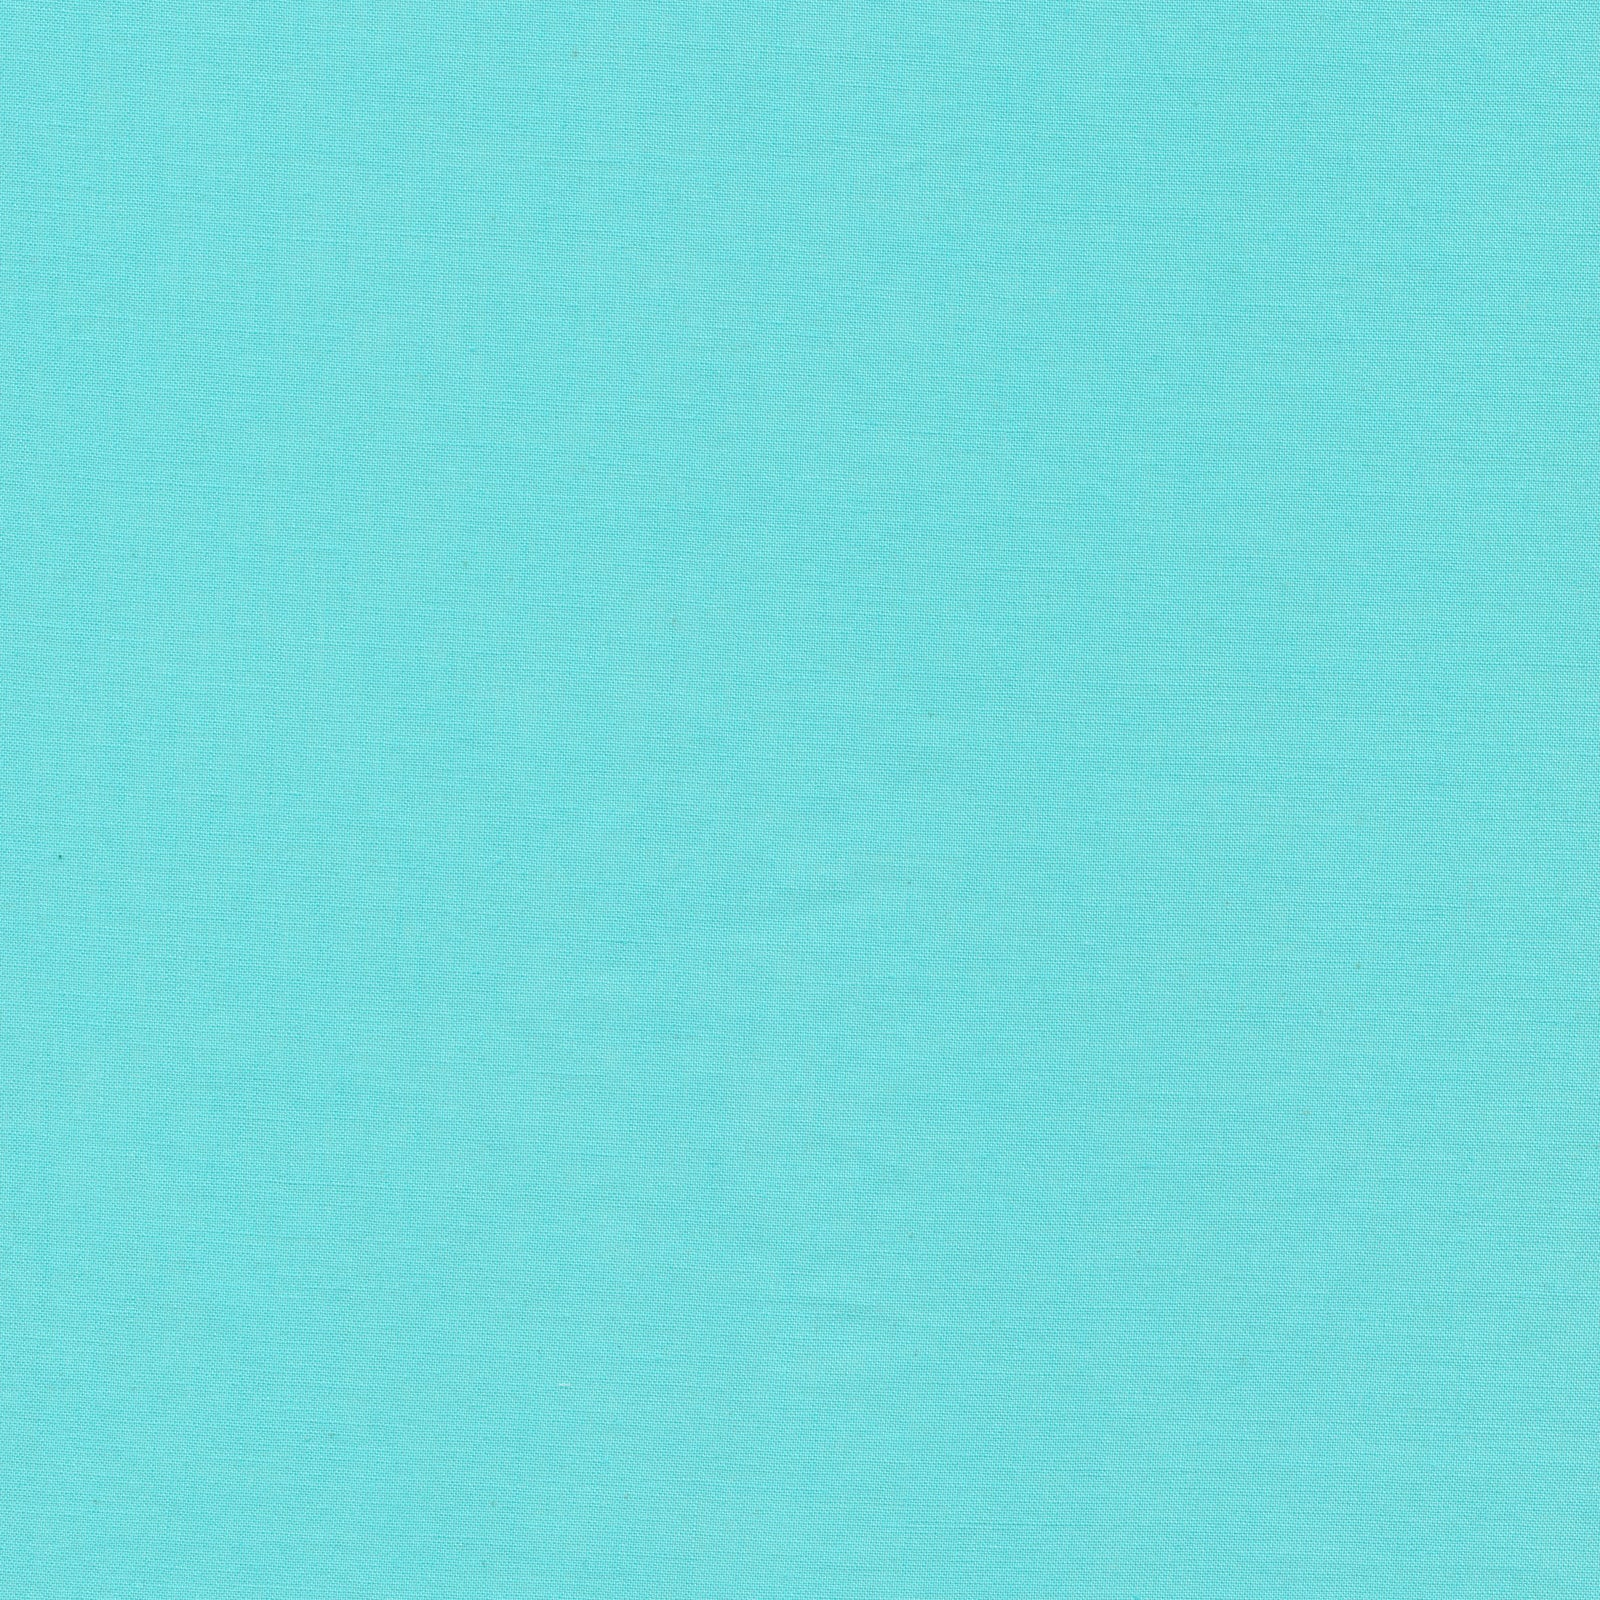 SOLID ORGANIC COTTON - quilting/poplins - Dolittles - Cloud9 Organic Cotton - Powder Blue (1/2 yard)